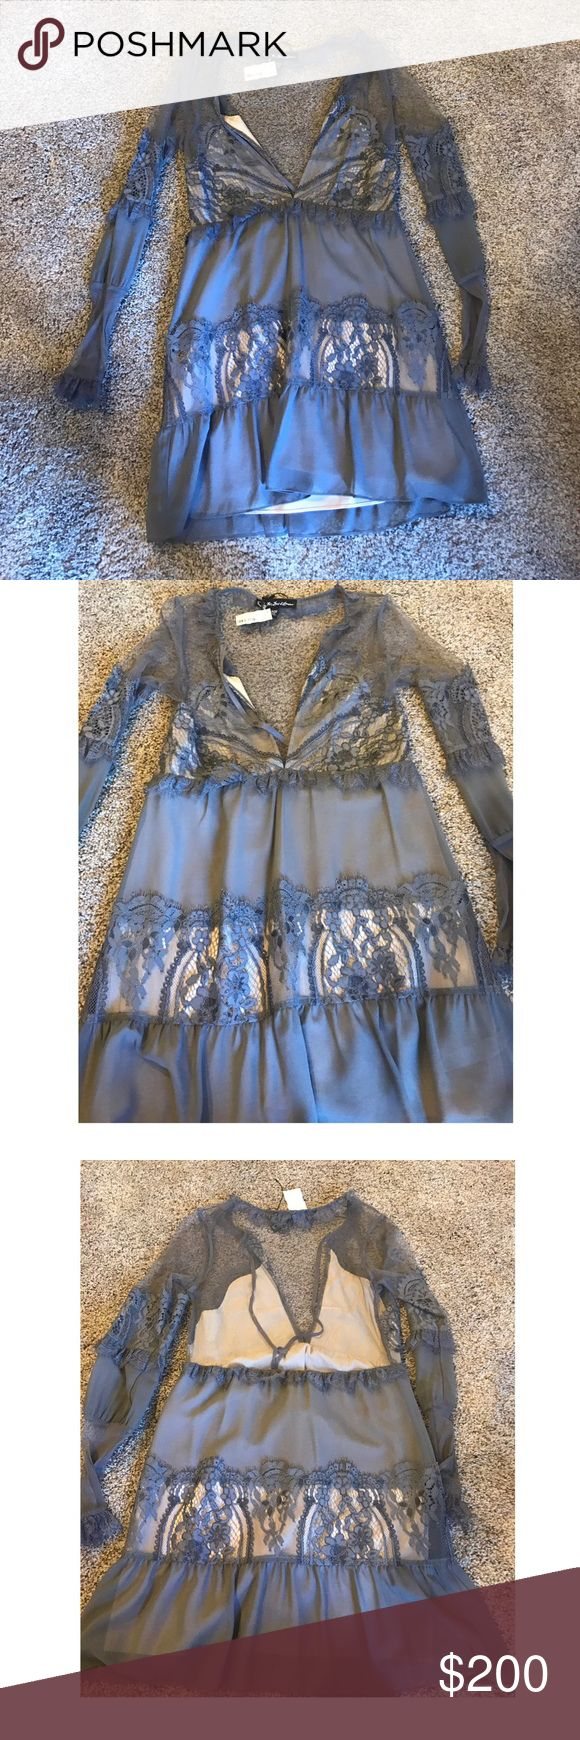 For Love and Lemons grey long sleeve dress New never worn with tags For Love and Lemons long sleeve sheer with lace grey baby doll style dress. Has a lining. Great for any occasion For Love and Lemons Dresses Mini